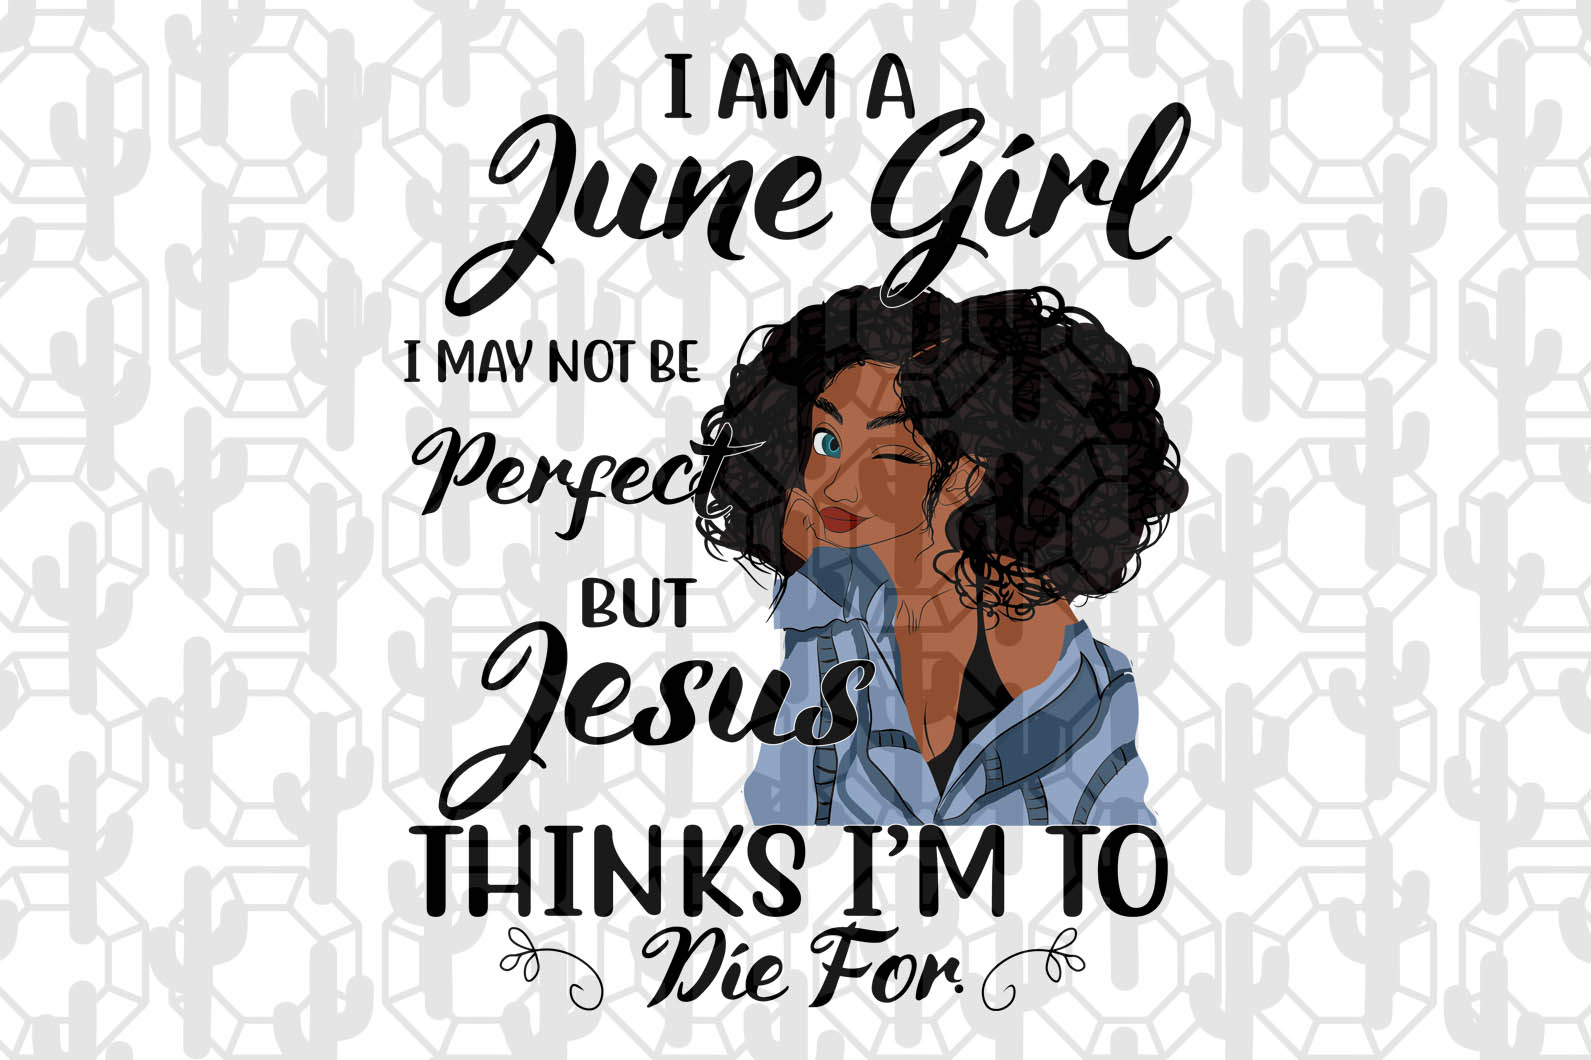 I am a June girl I June not be perfect, born in June, June svg, June birthday party, June anniversary, birthday queen, black girl, sexy girl, black lives matter, digital file, vinyl for cricut,